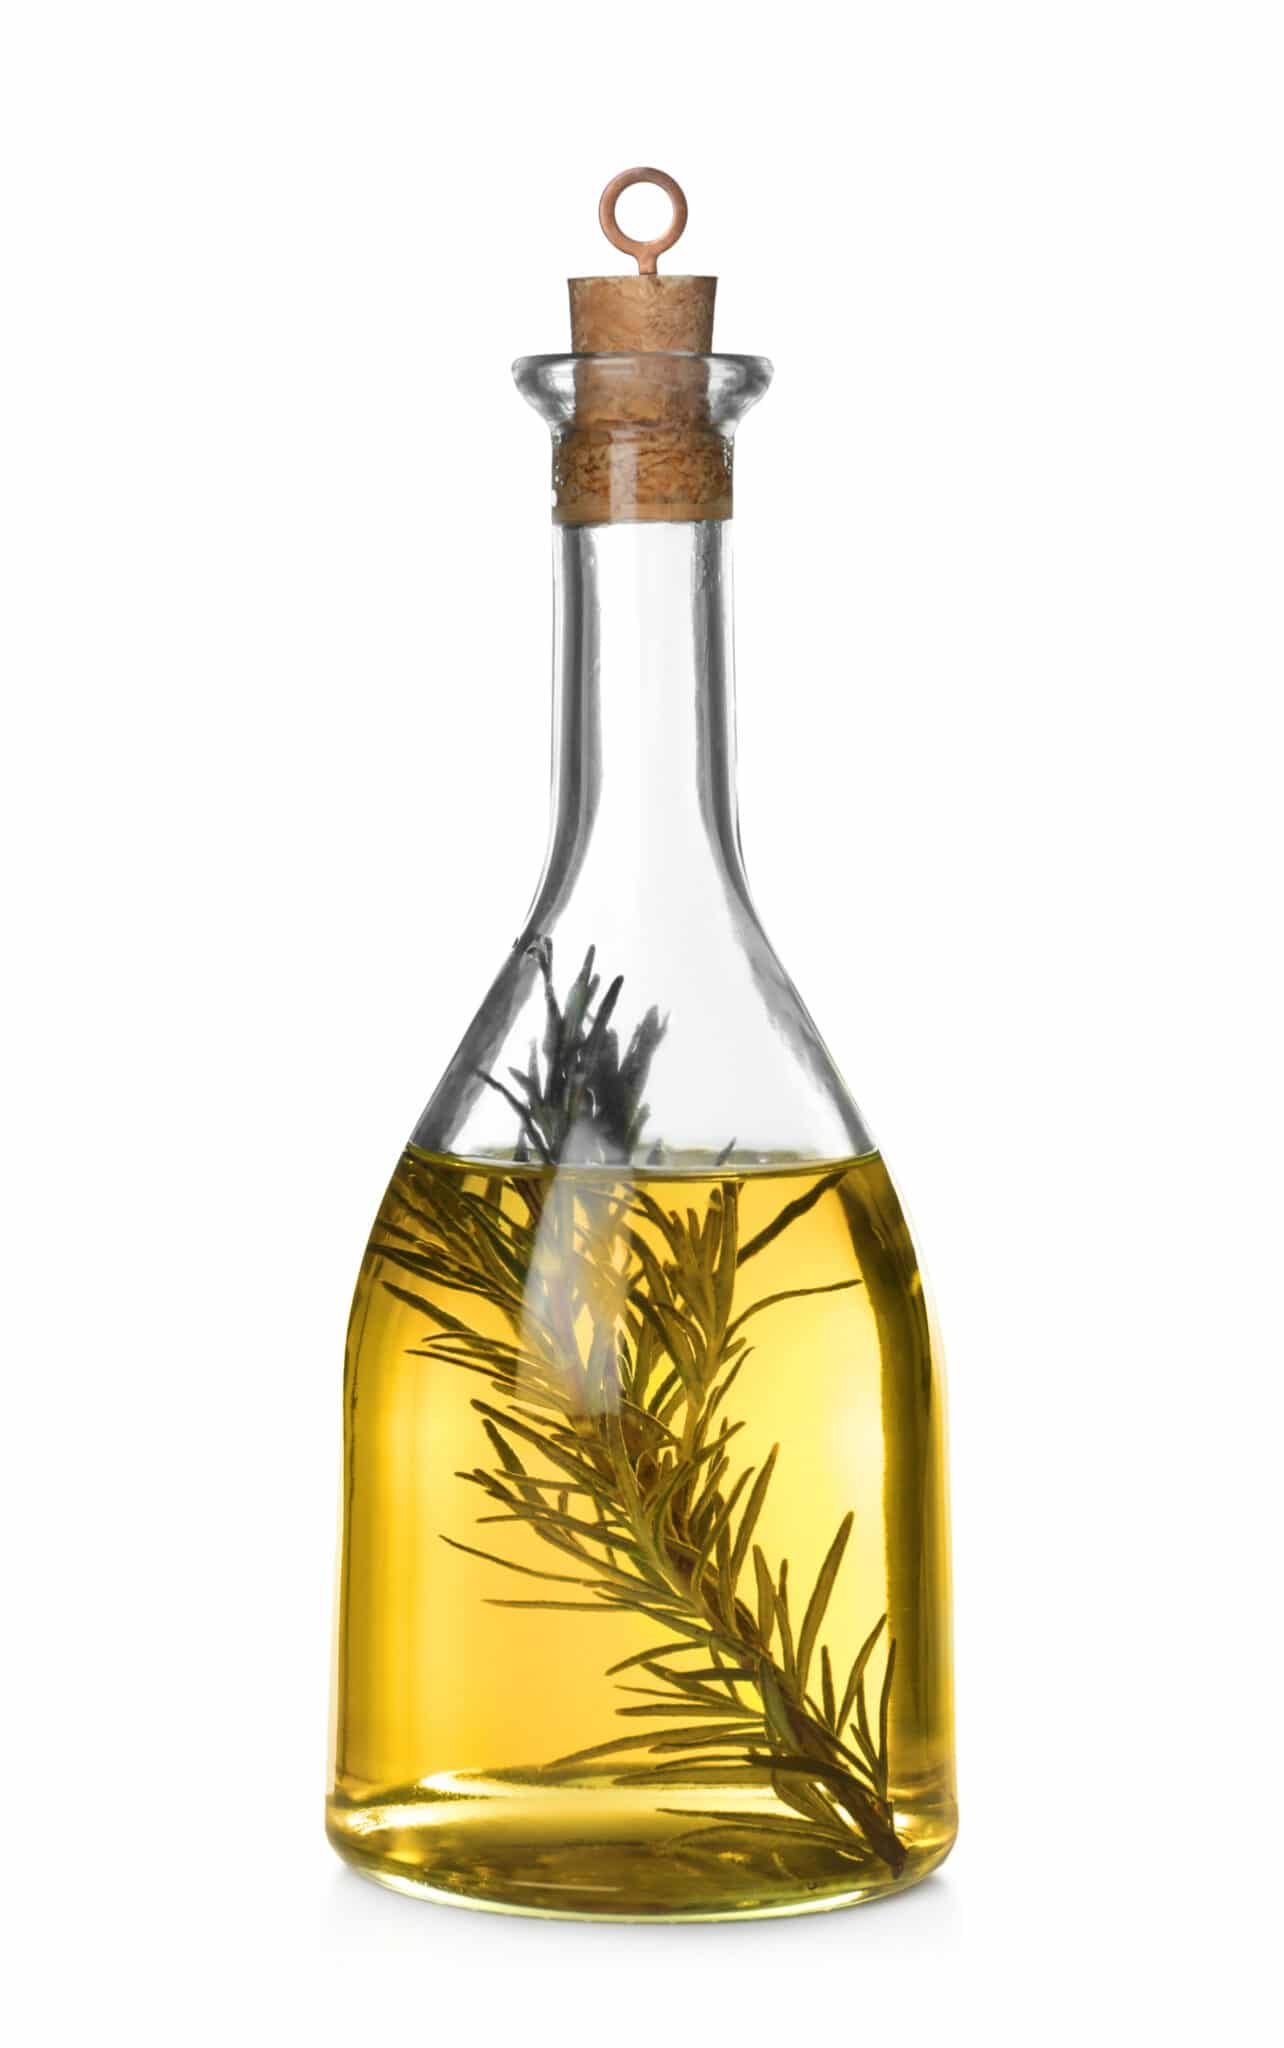 Cooking oil with rosemary in glass bottle isolated on white